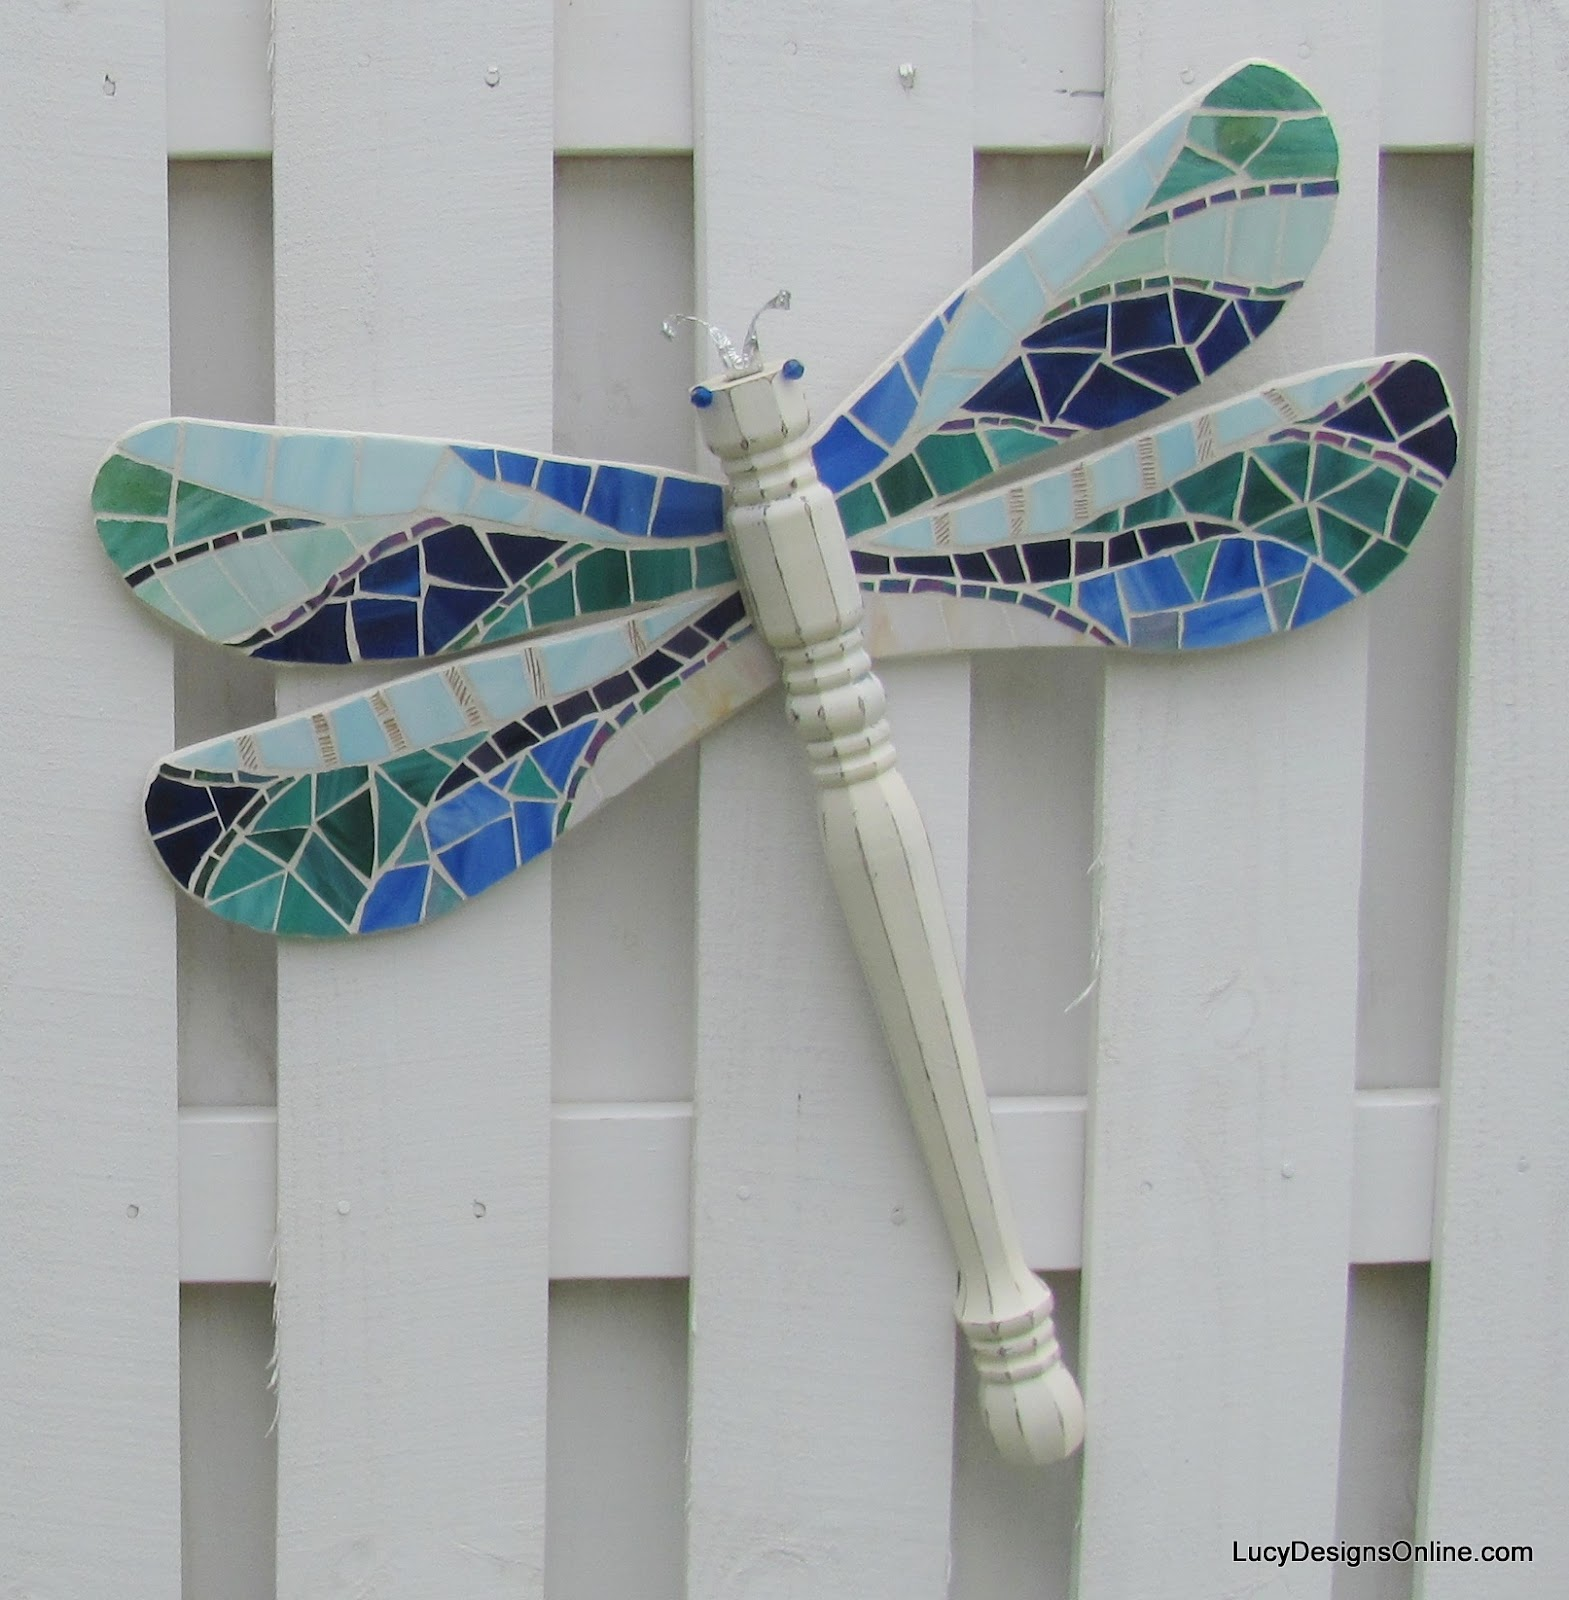 Table Leg Dragonflies With Stained Glass Mosaic Wings